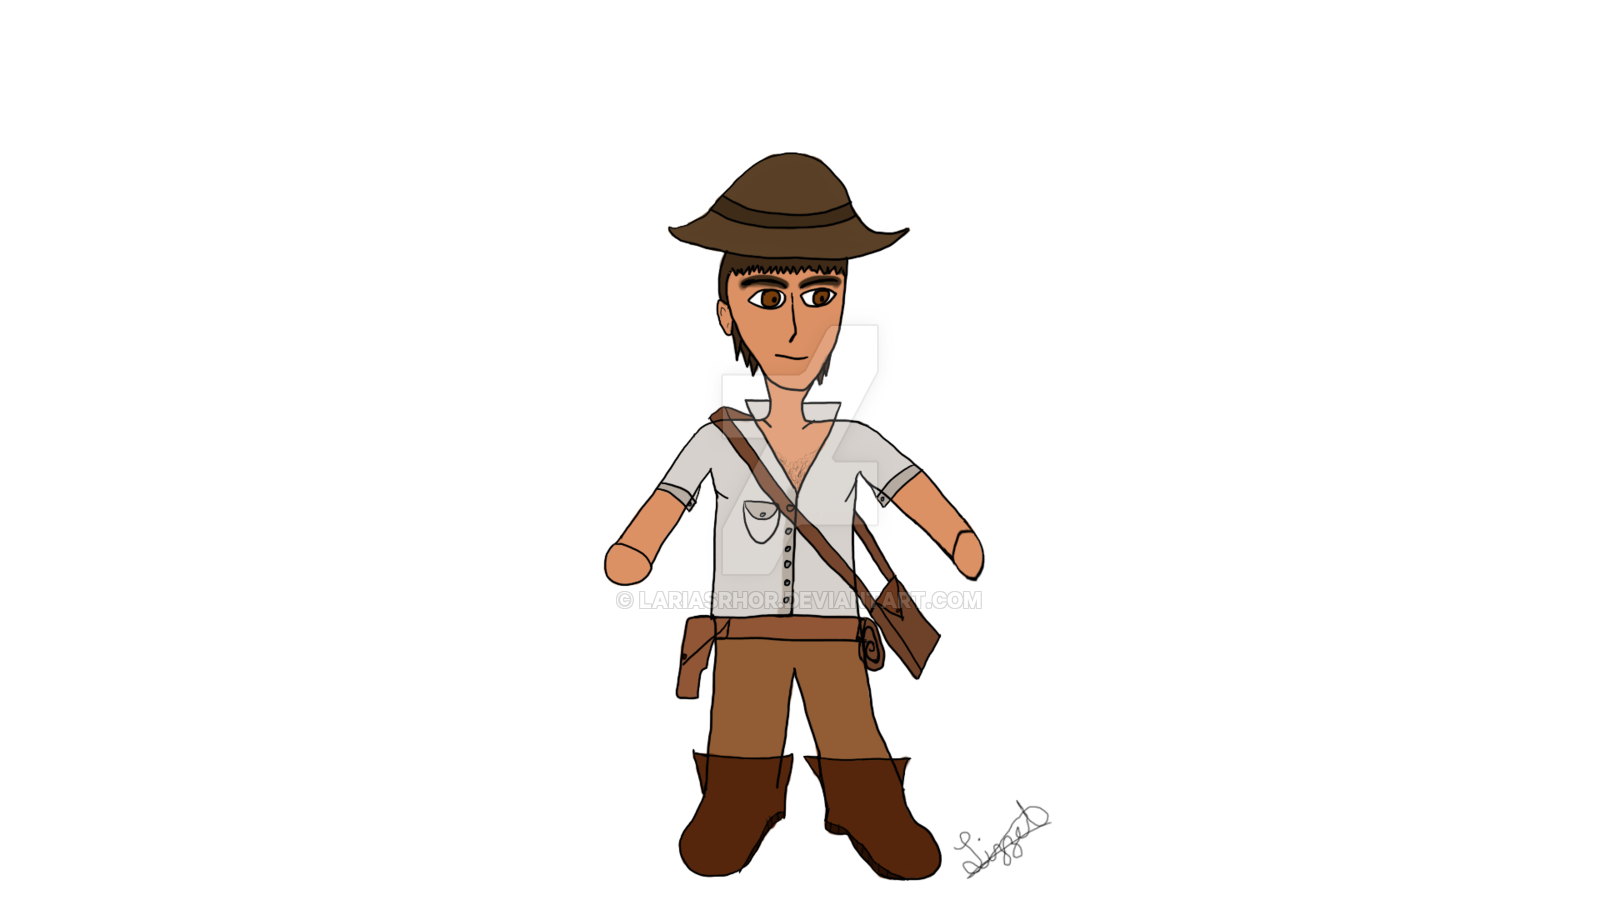 Chibi style by lariasrhor. Whip clipart indiana jones whip